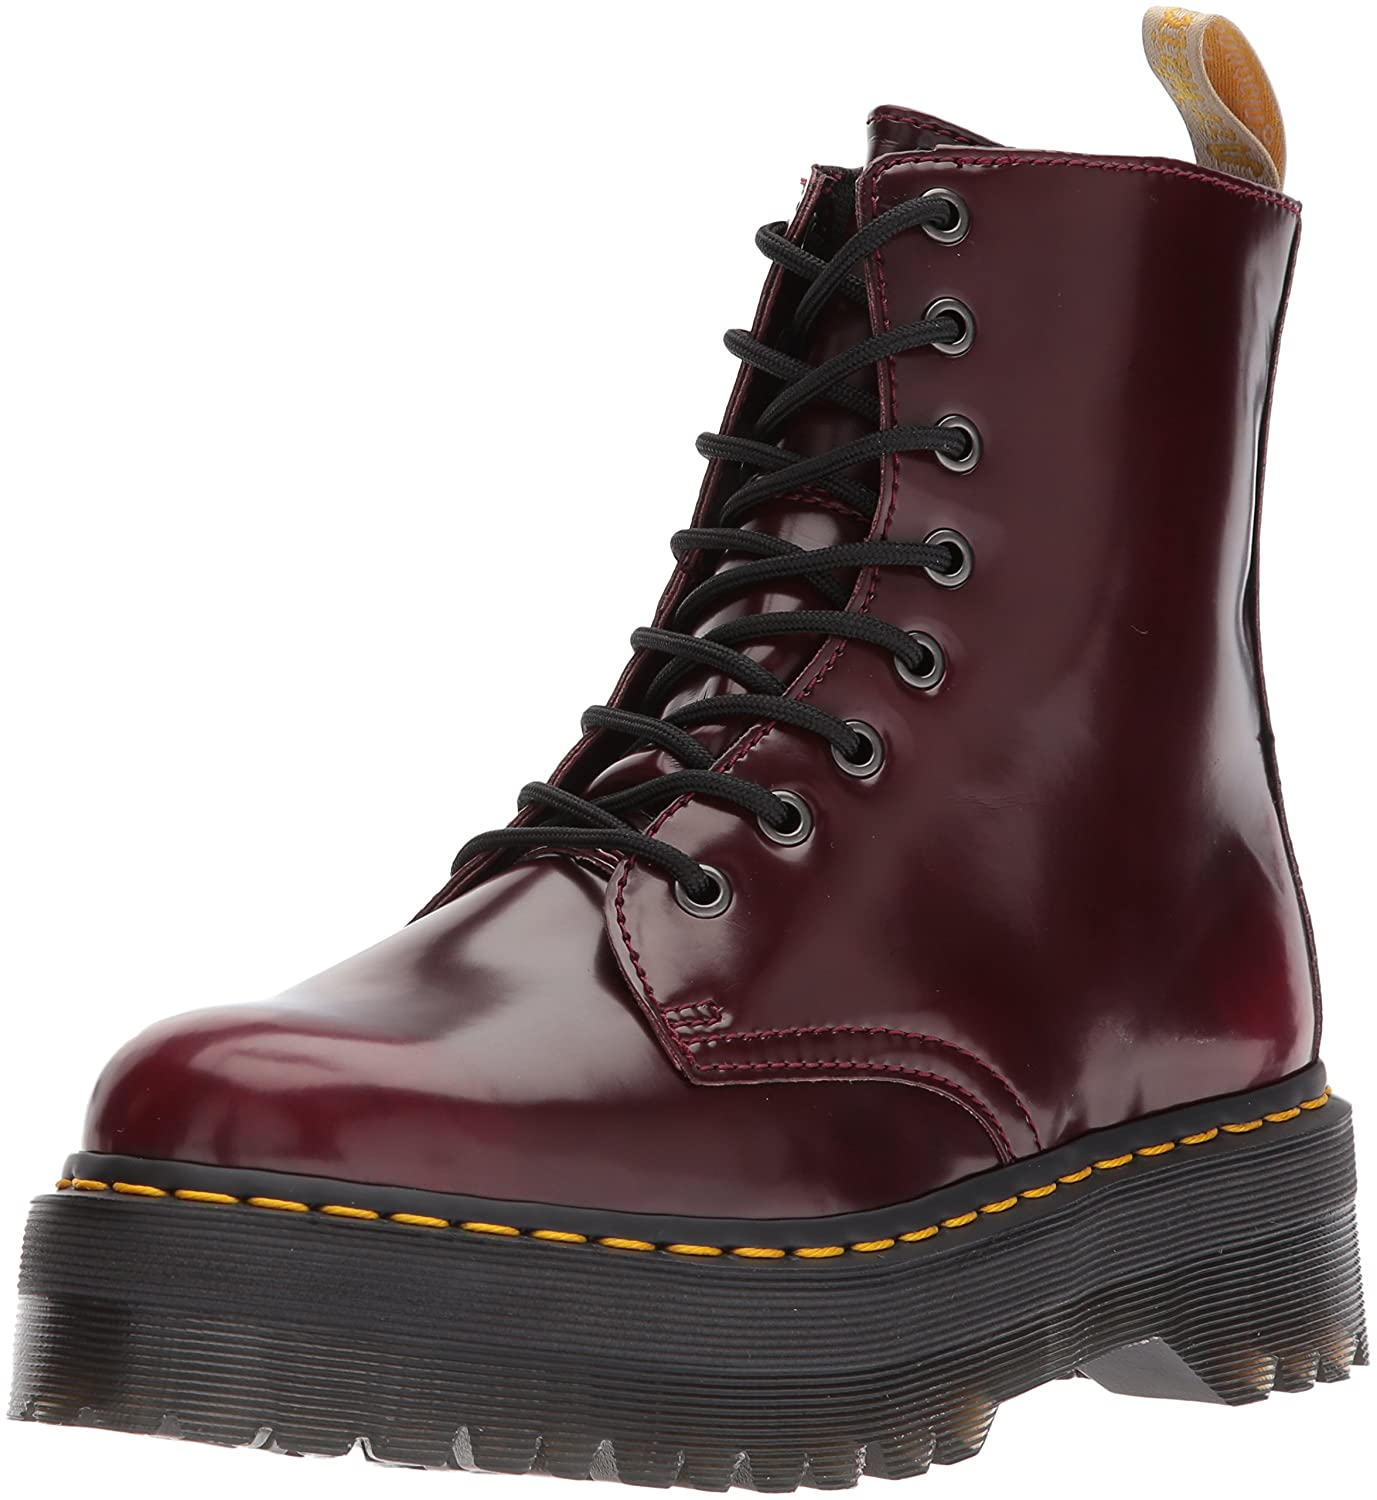 Dr. Martens Women's V Jadon II Fashion Boot B0756NQ9Z8 13 Medium UK (15 US)|Cherry Red Cambridge Brush